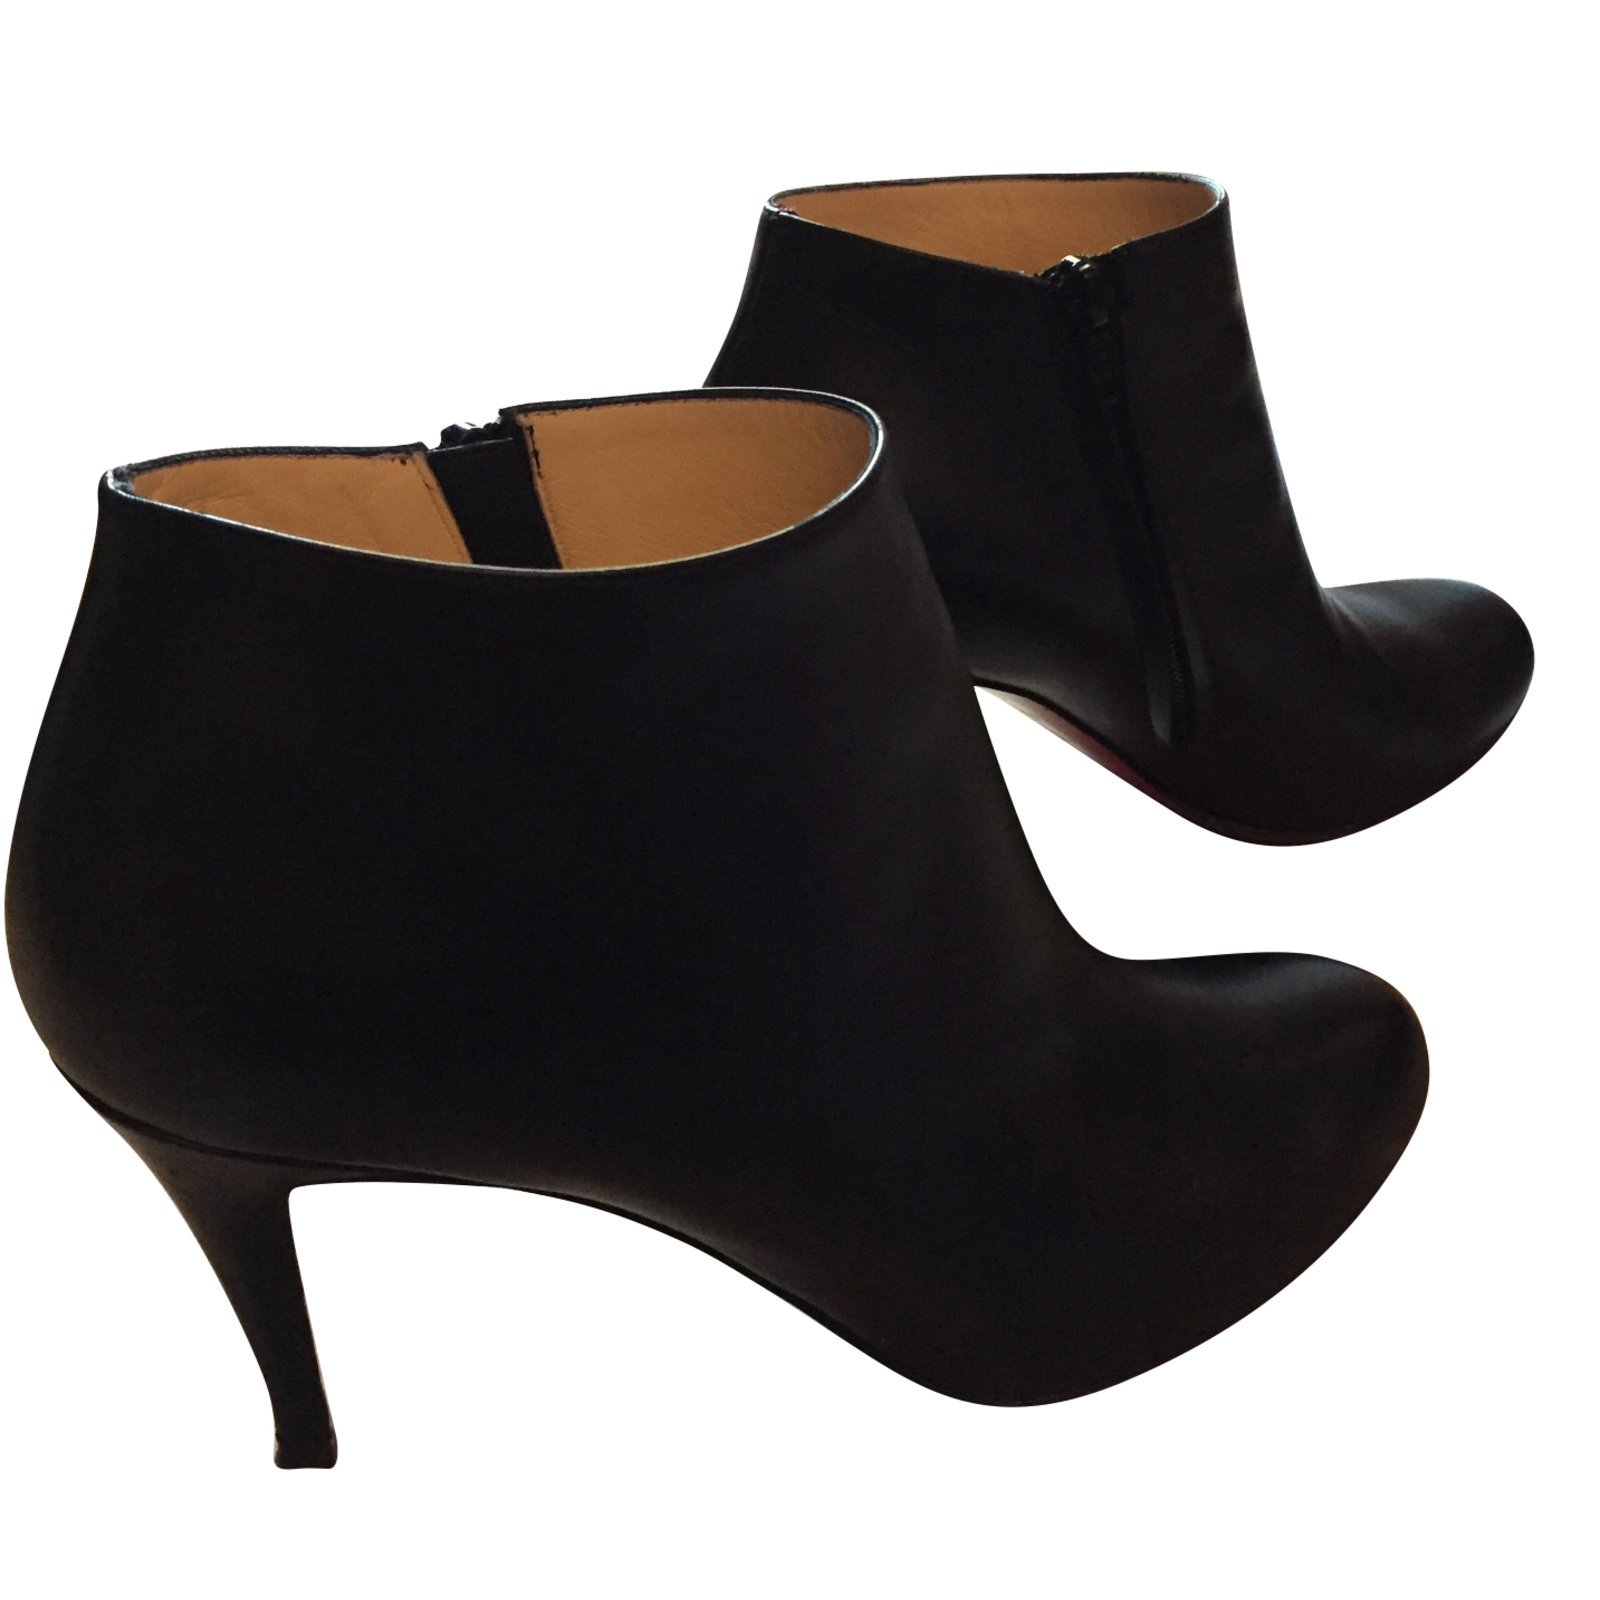 4ee6dc62c983 ... coupon christian louboutin ankle boots ankle boots leather black  ref.60781 1dcba 5e402